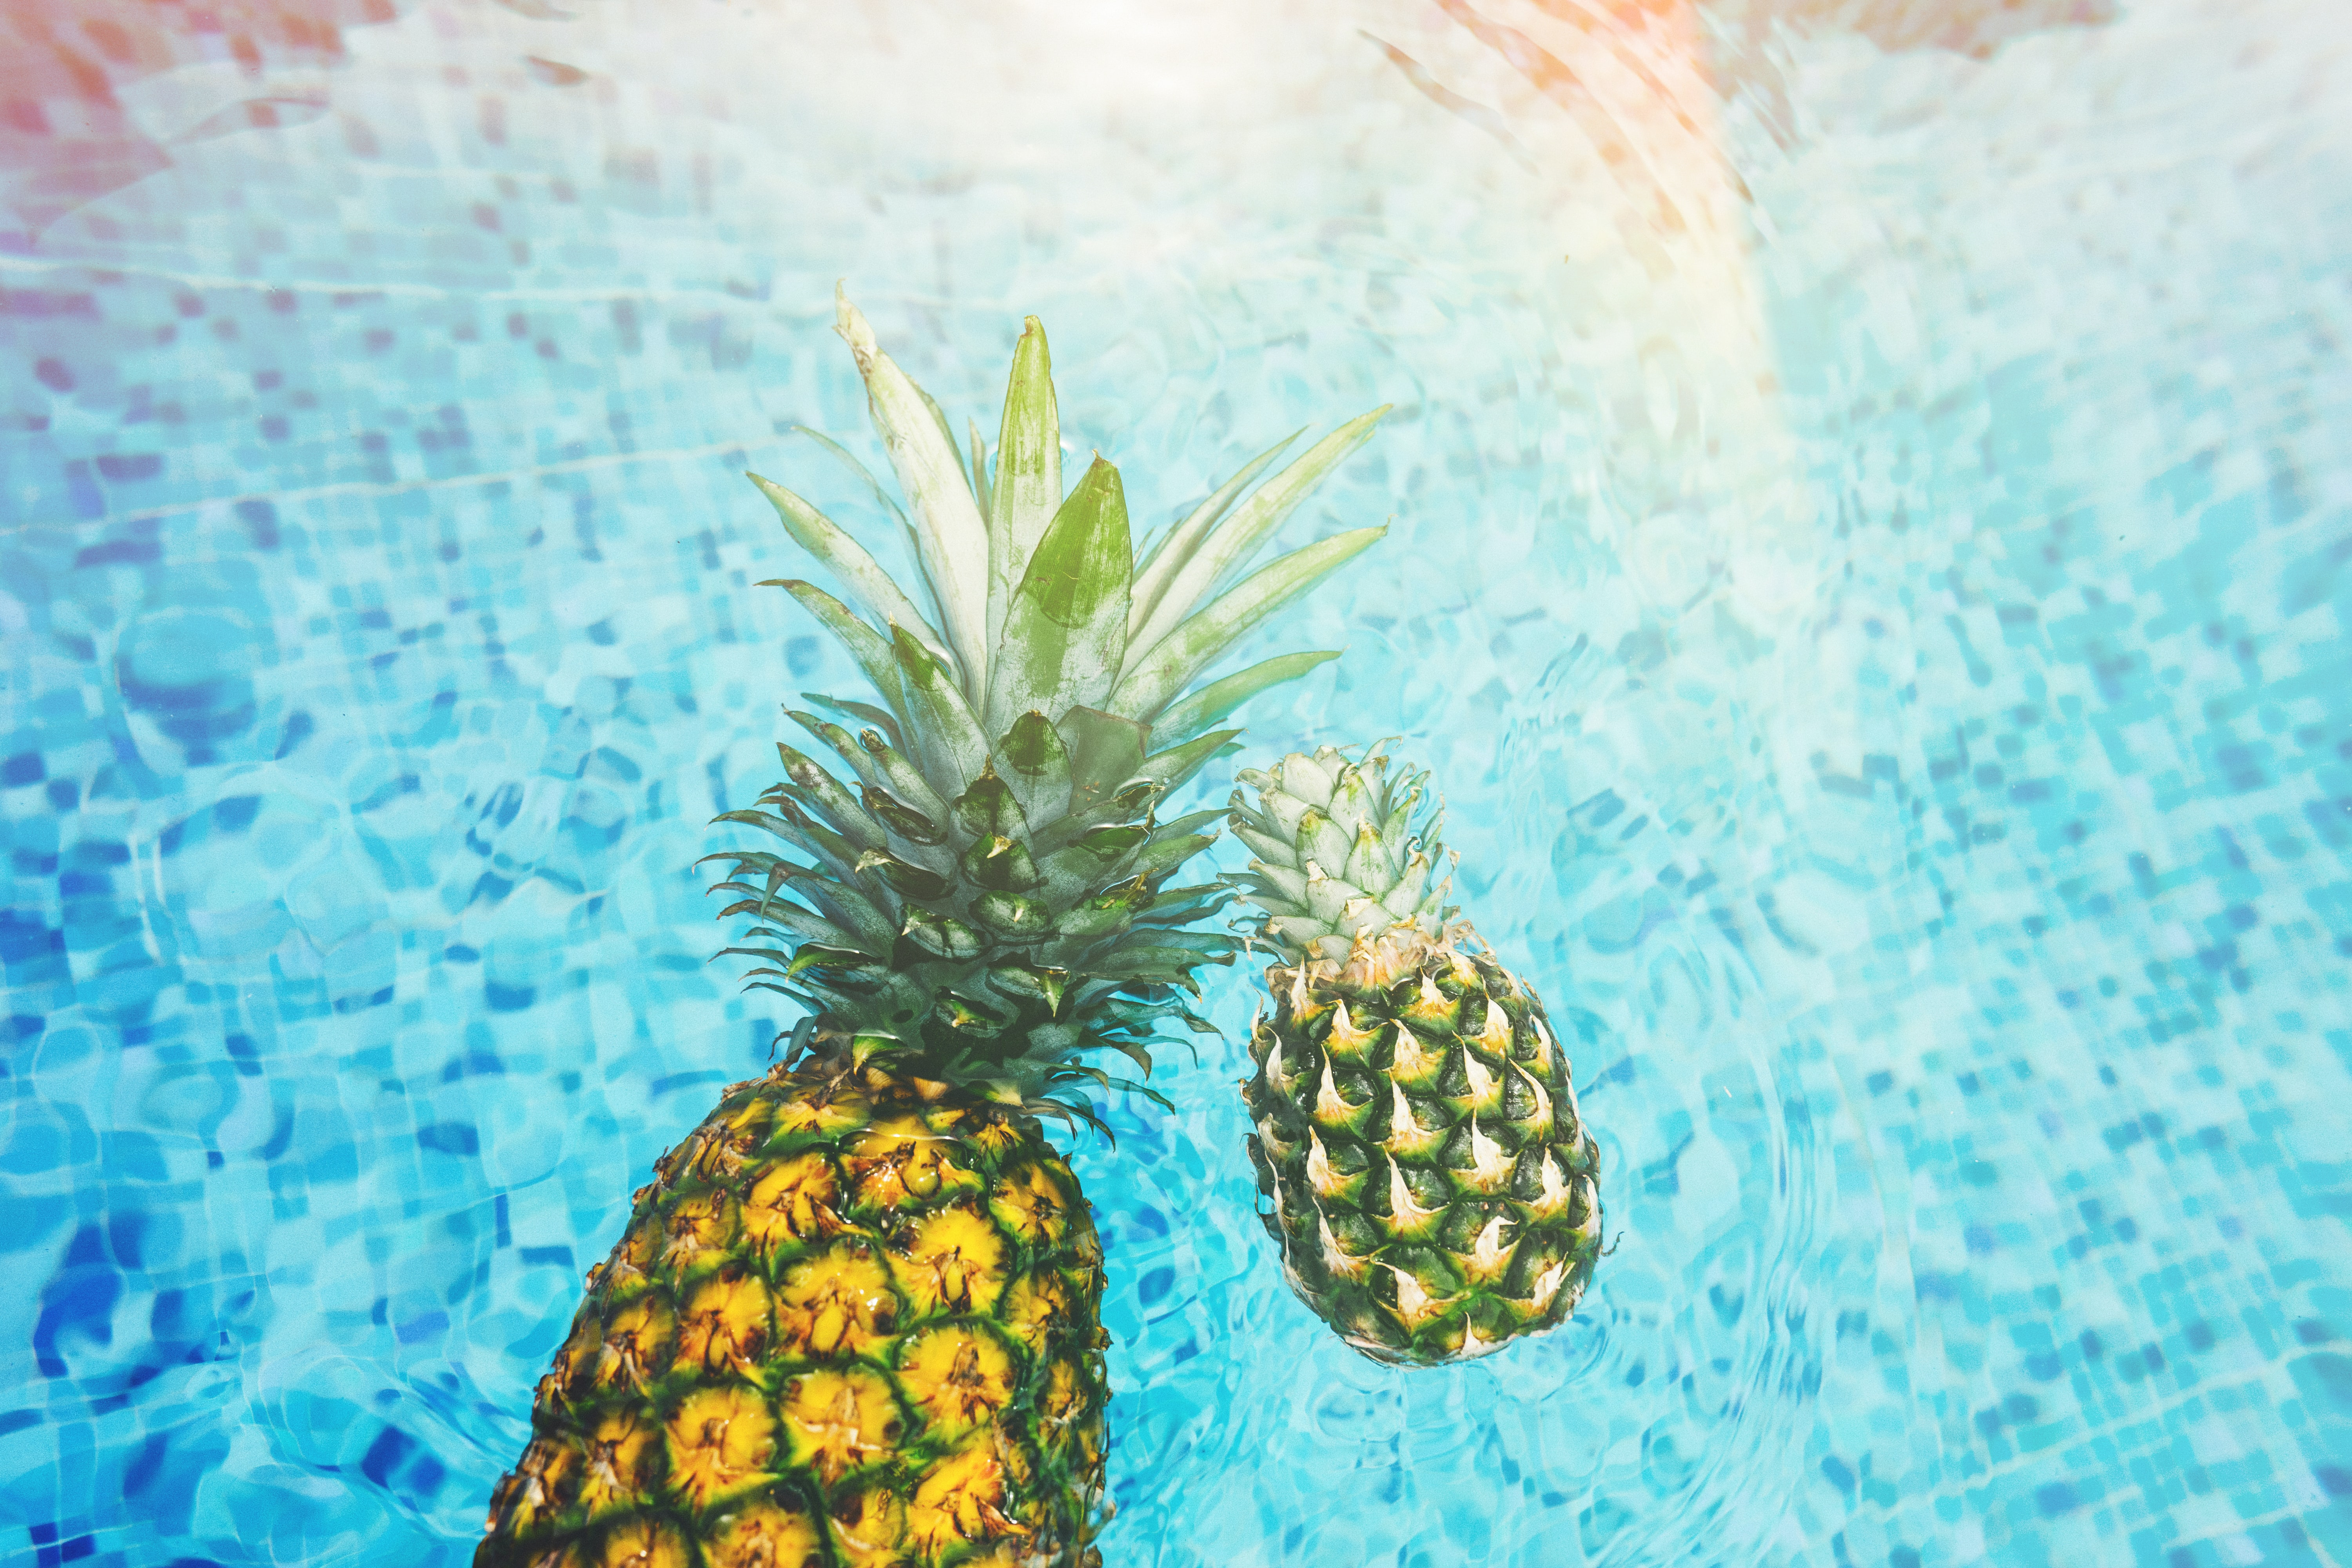 Fresh pineapples floating in a blue pool